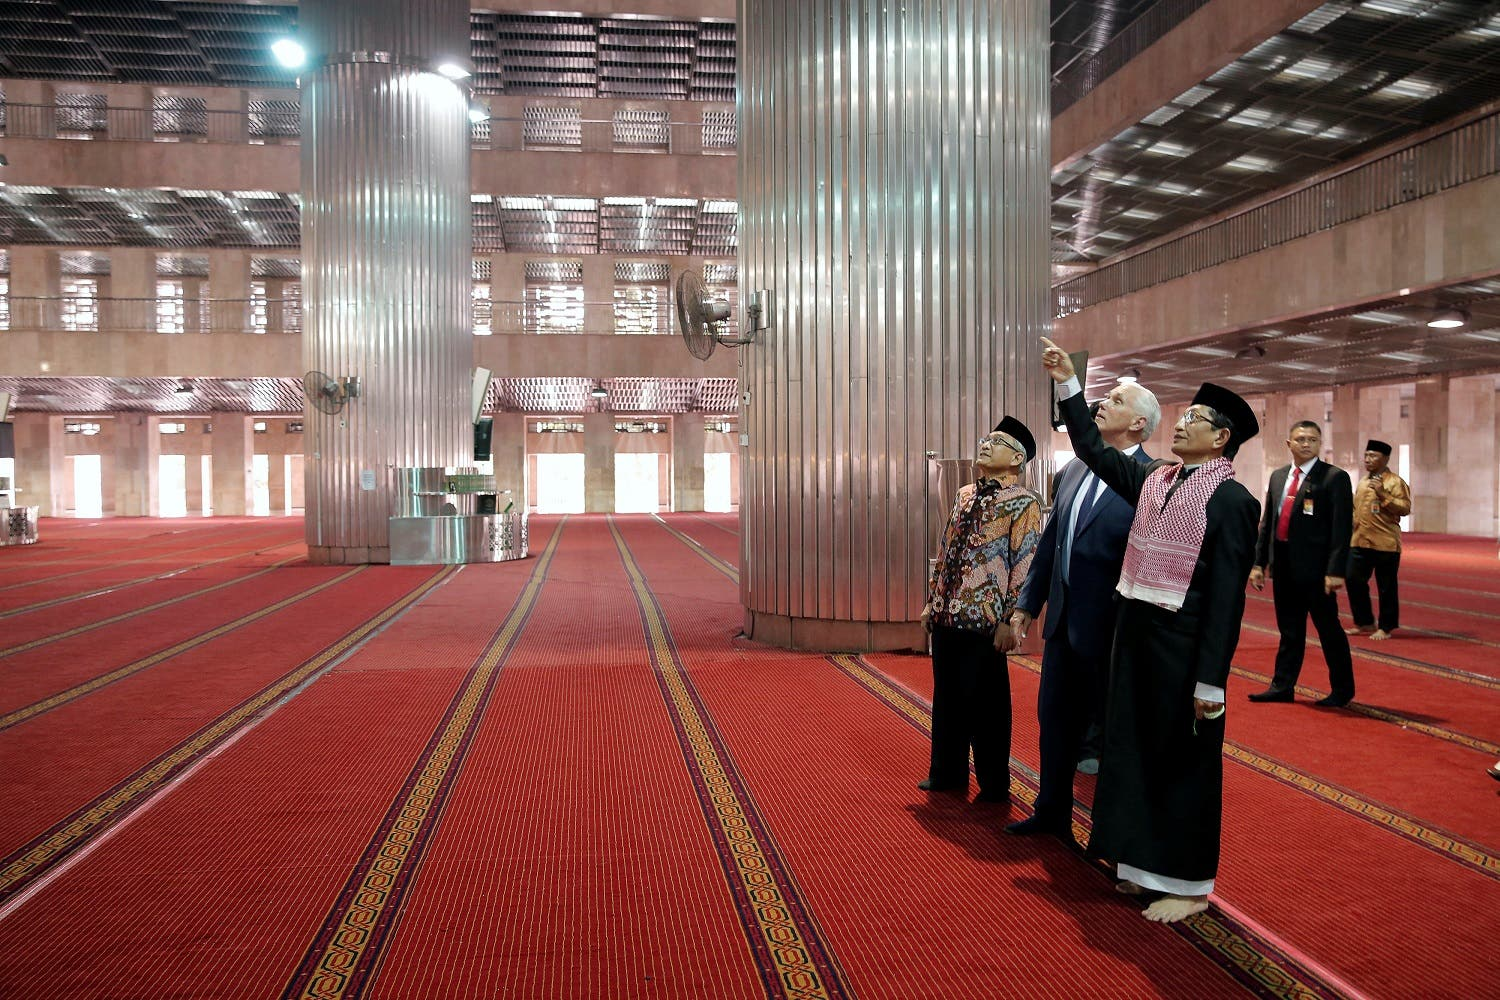 US Vice President Mike Pence tours the Istiqlal Mosque in Jakarta on April 20, 2017. (Reuters)